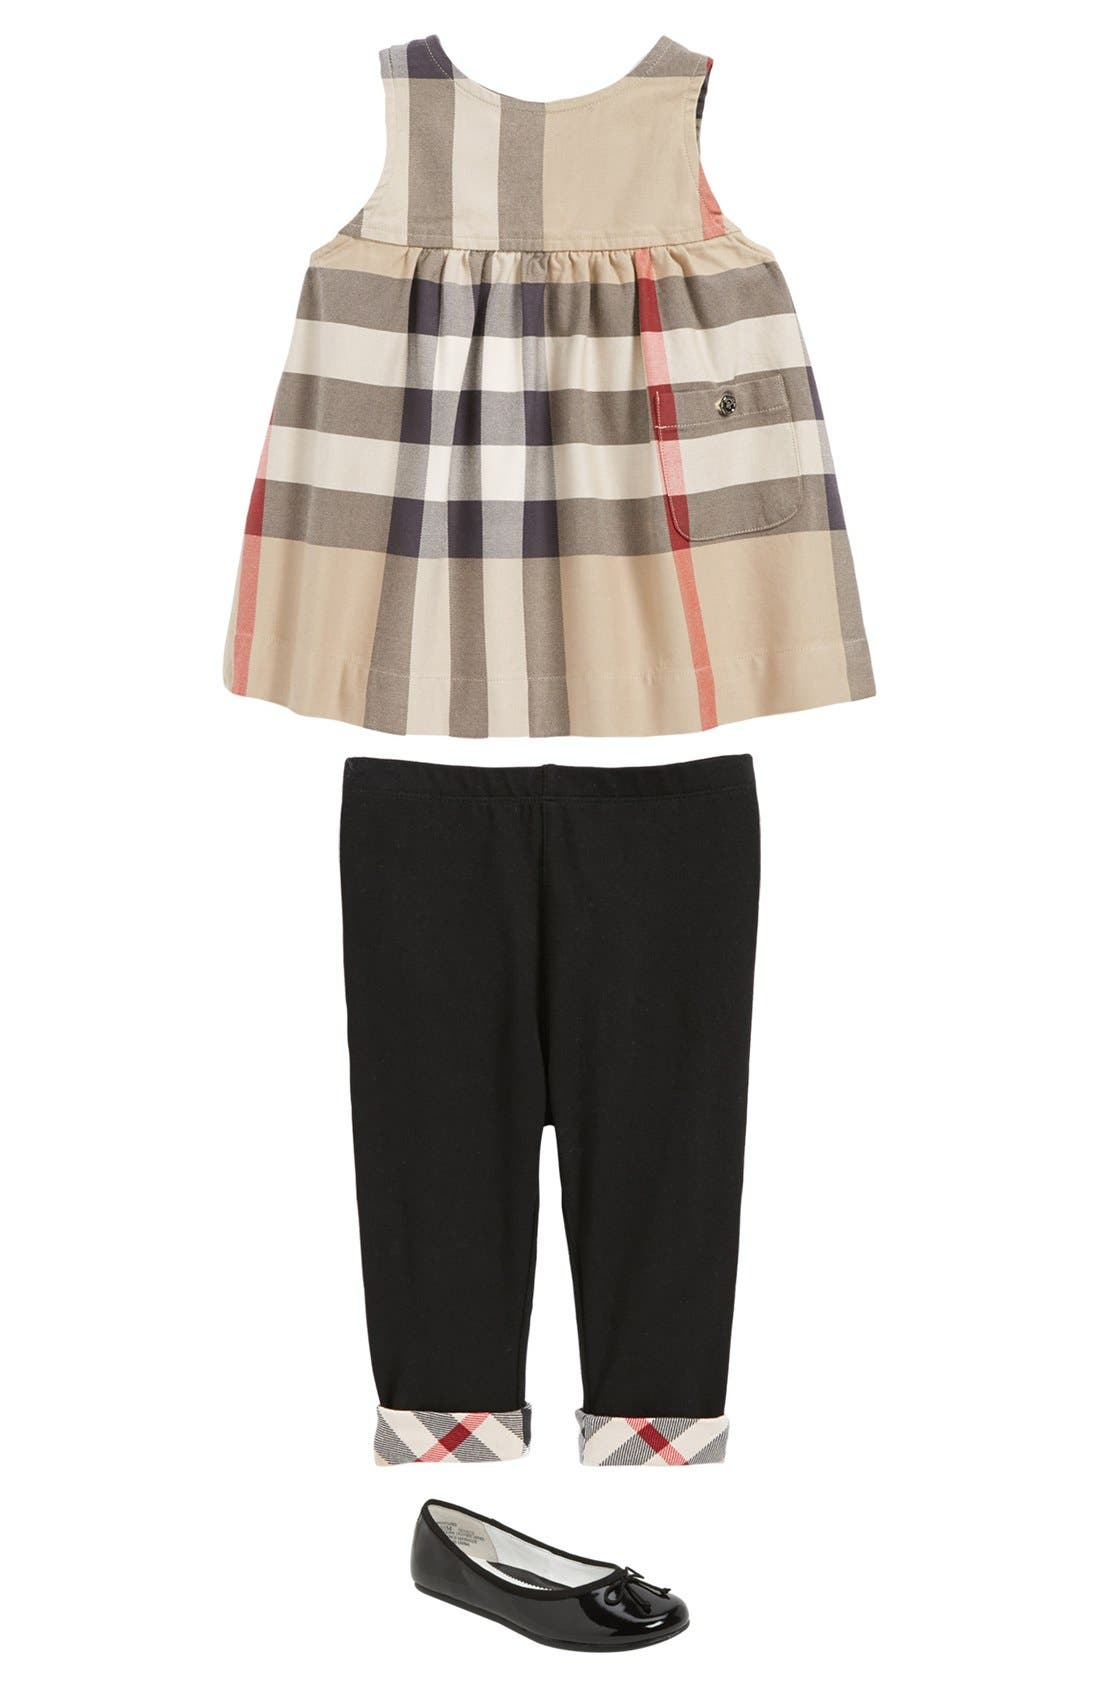 Alternate Image 1 Selected - Burberry Dress, Pants & Nordstrom Flat (Baby Girls)